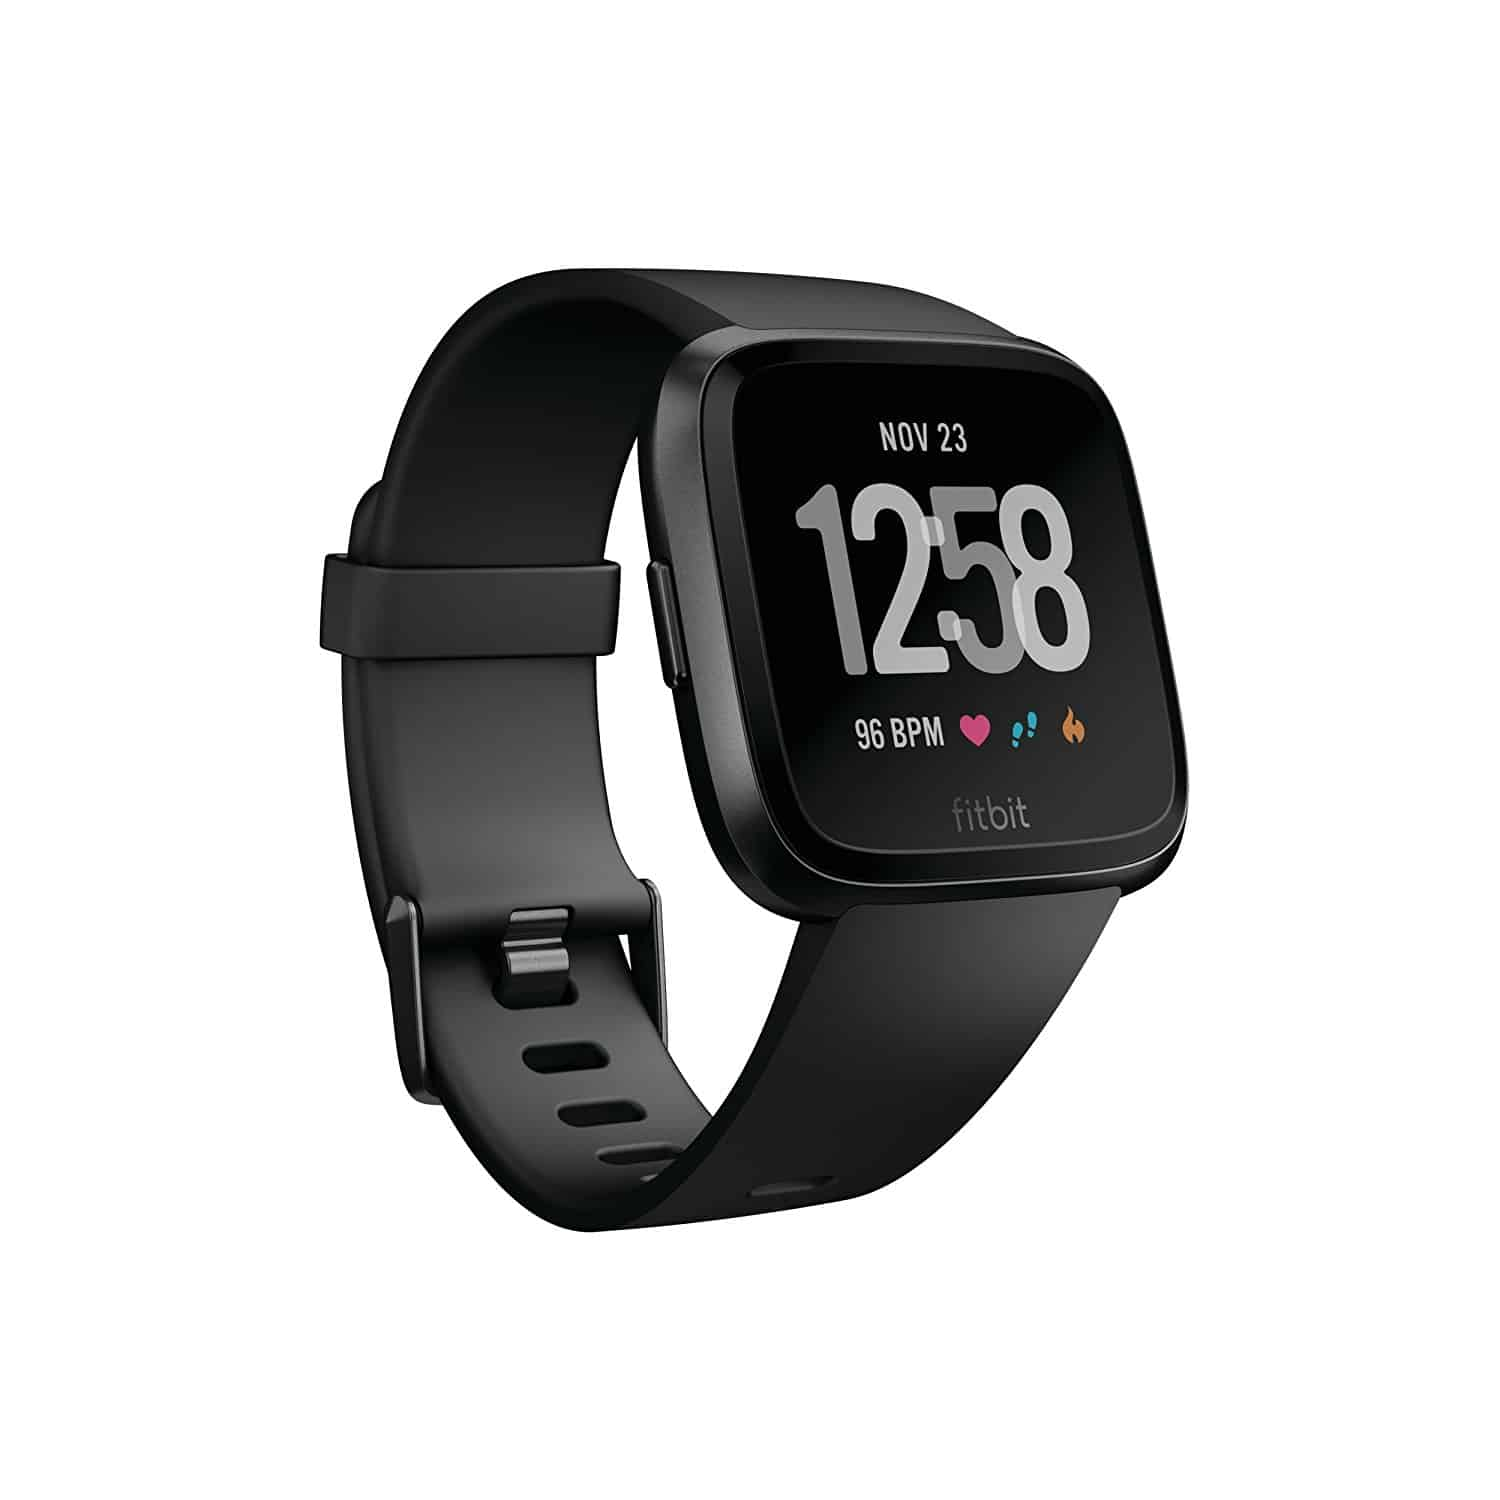 Fitbit Versa Smartewatch Review